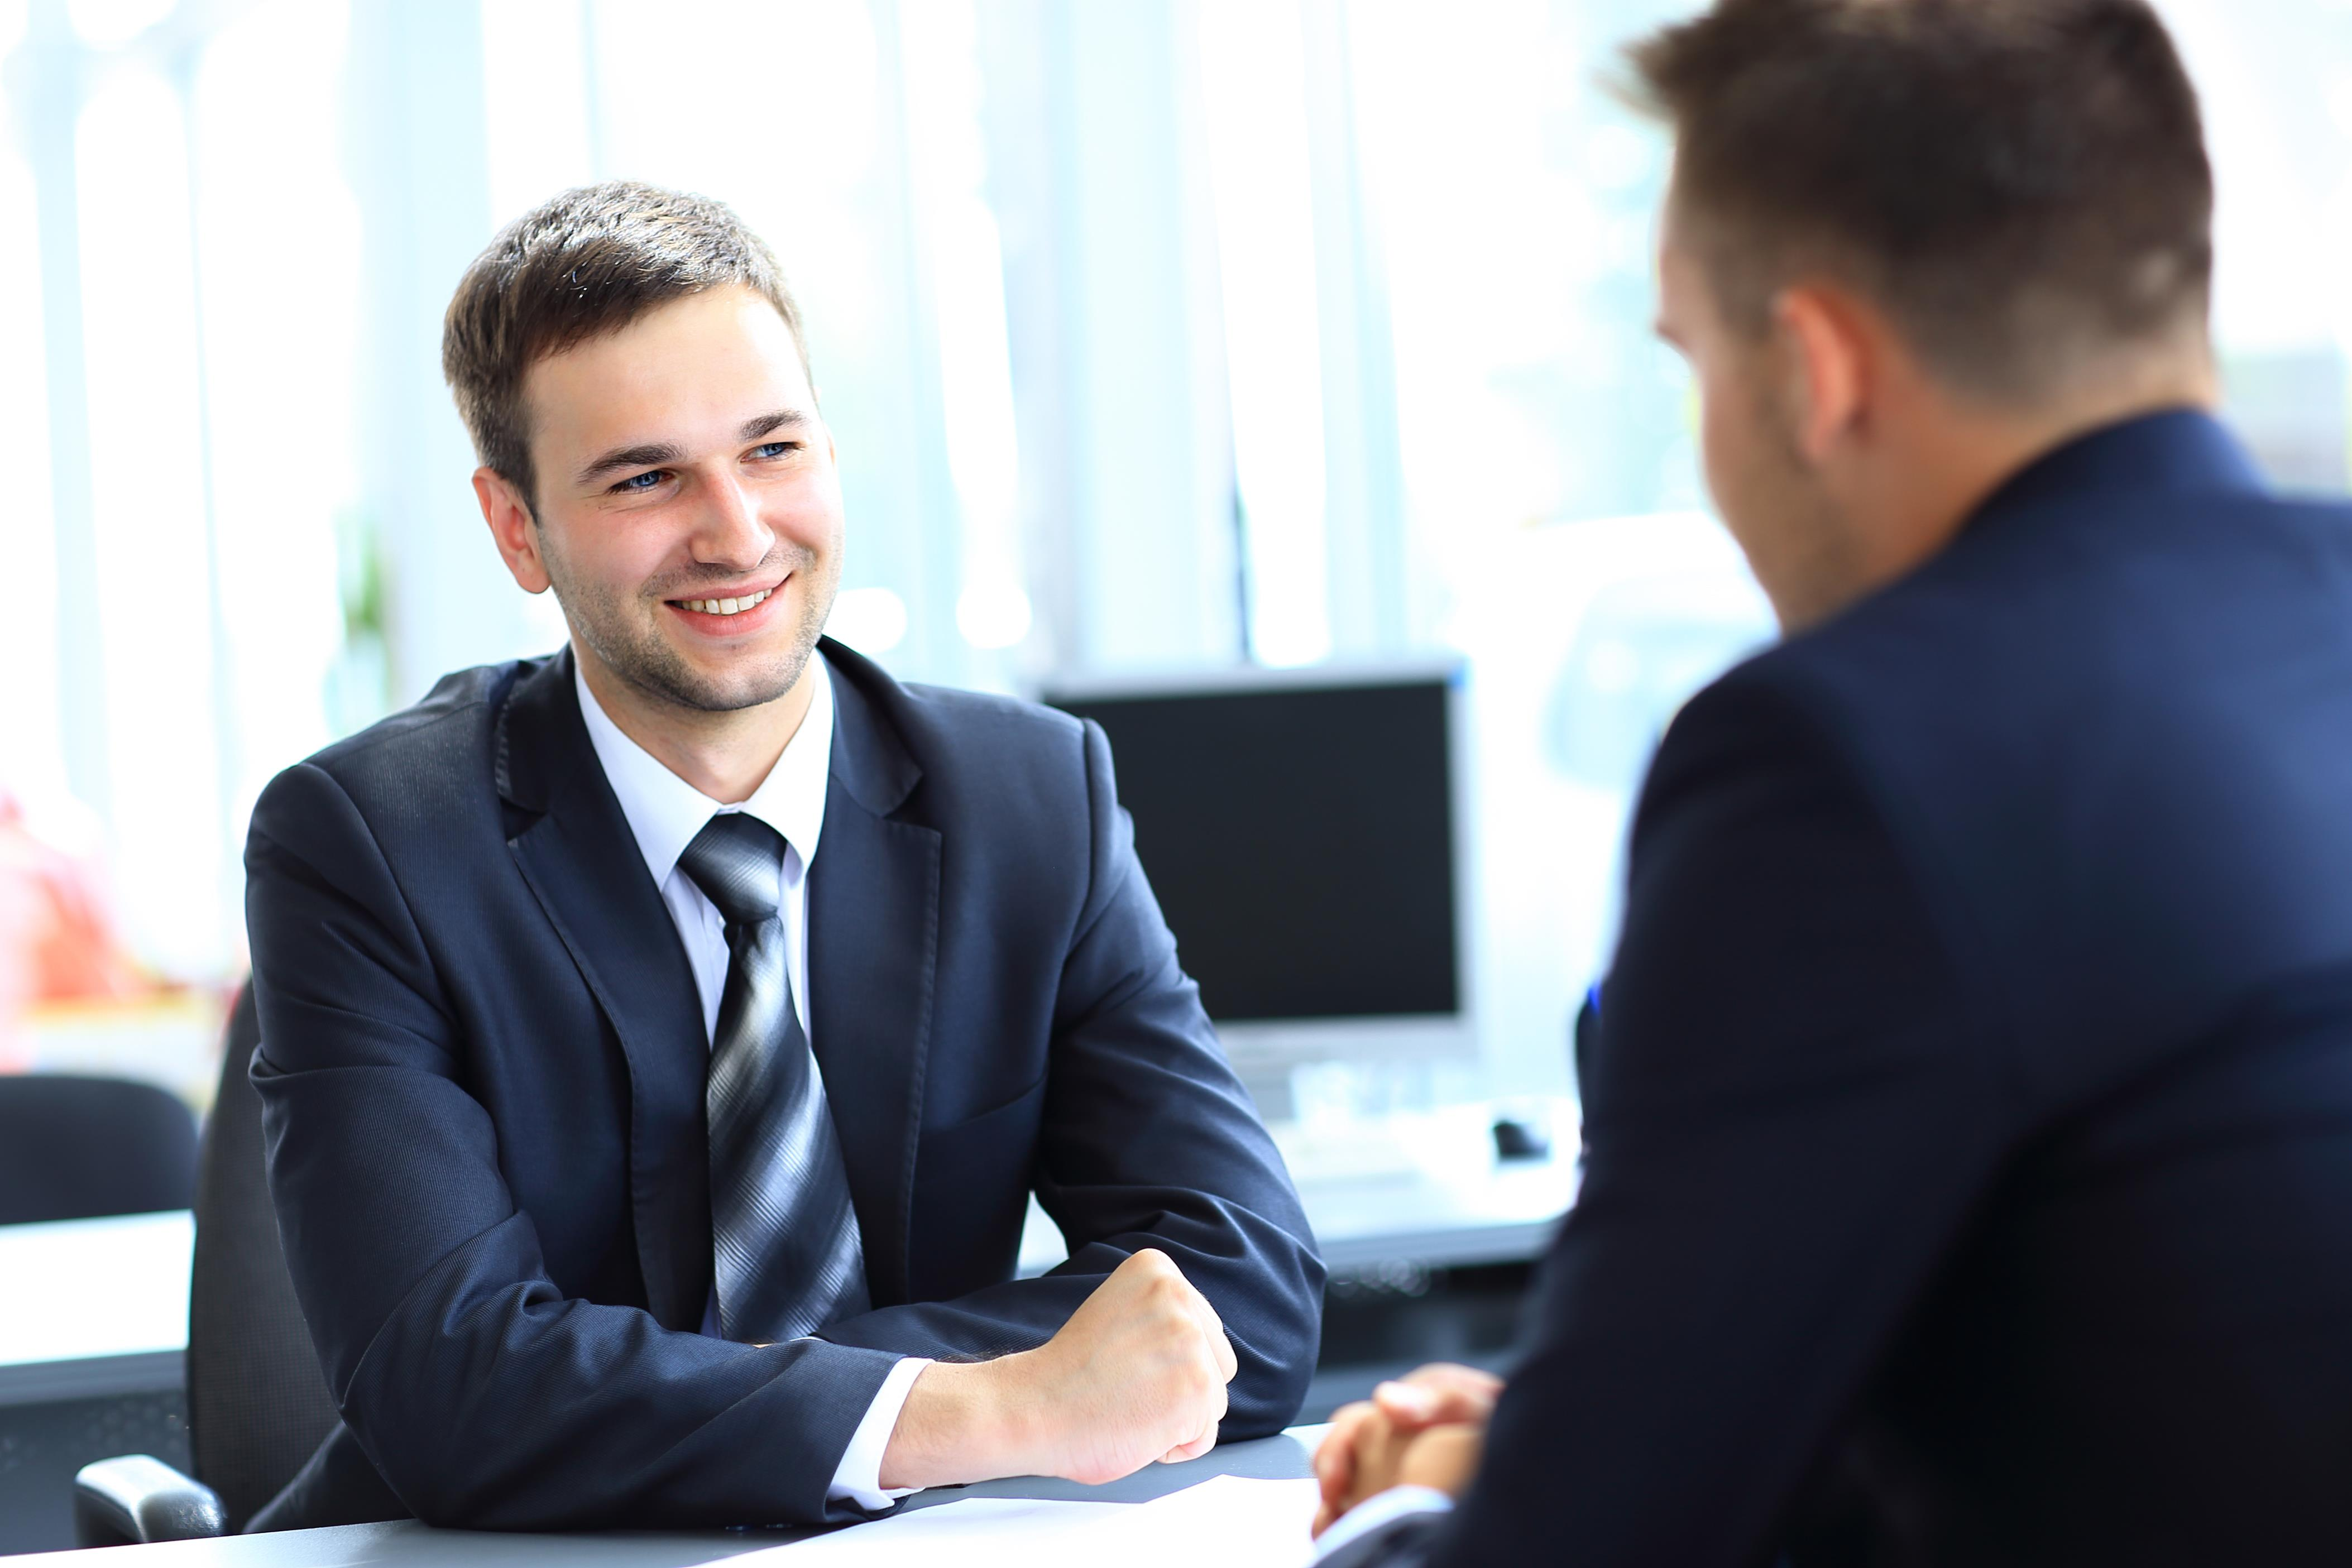 Man-at-Interview